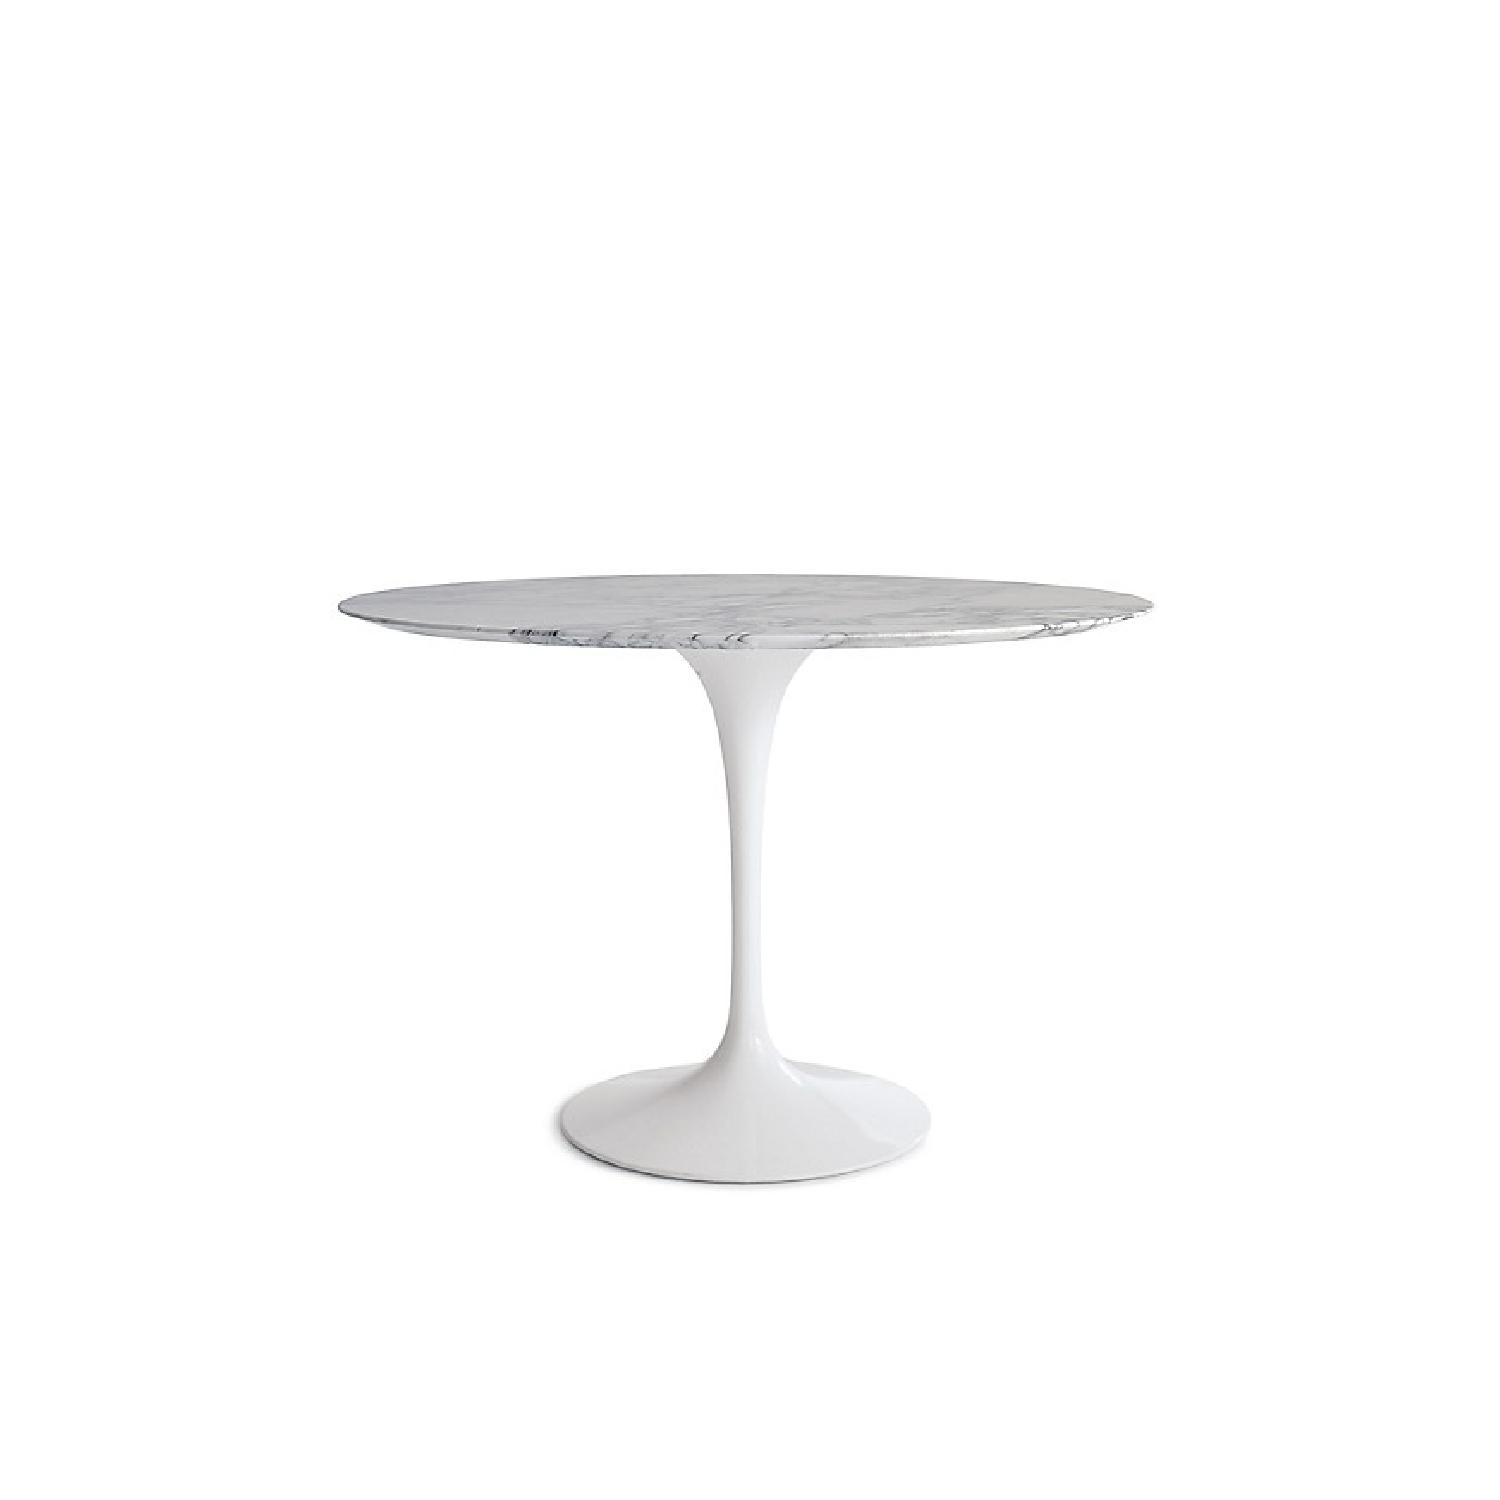 Tulip Table Tulip Style Round Marble Dining Table